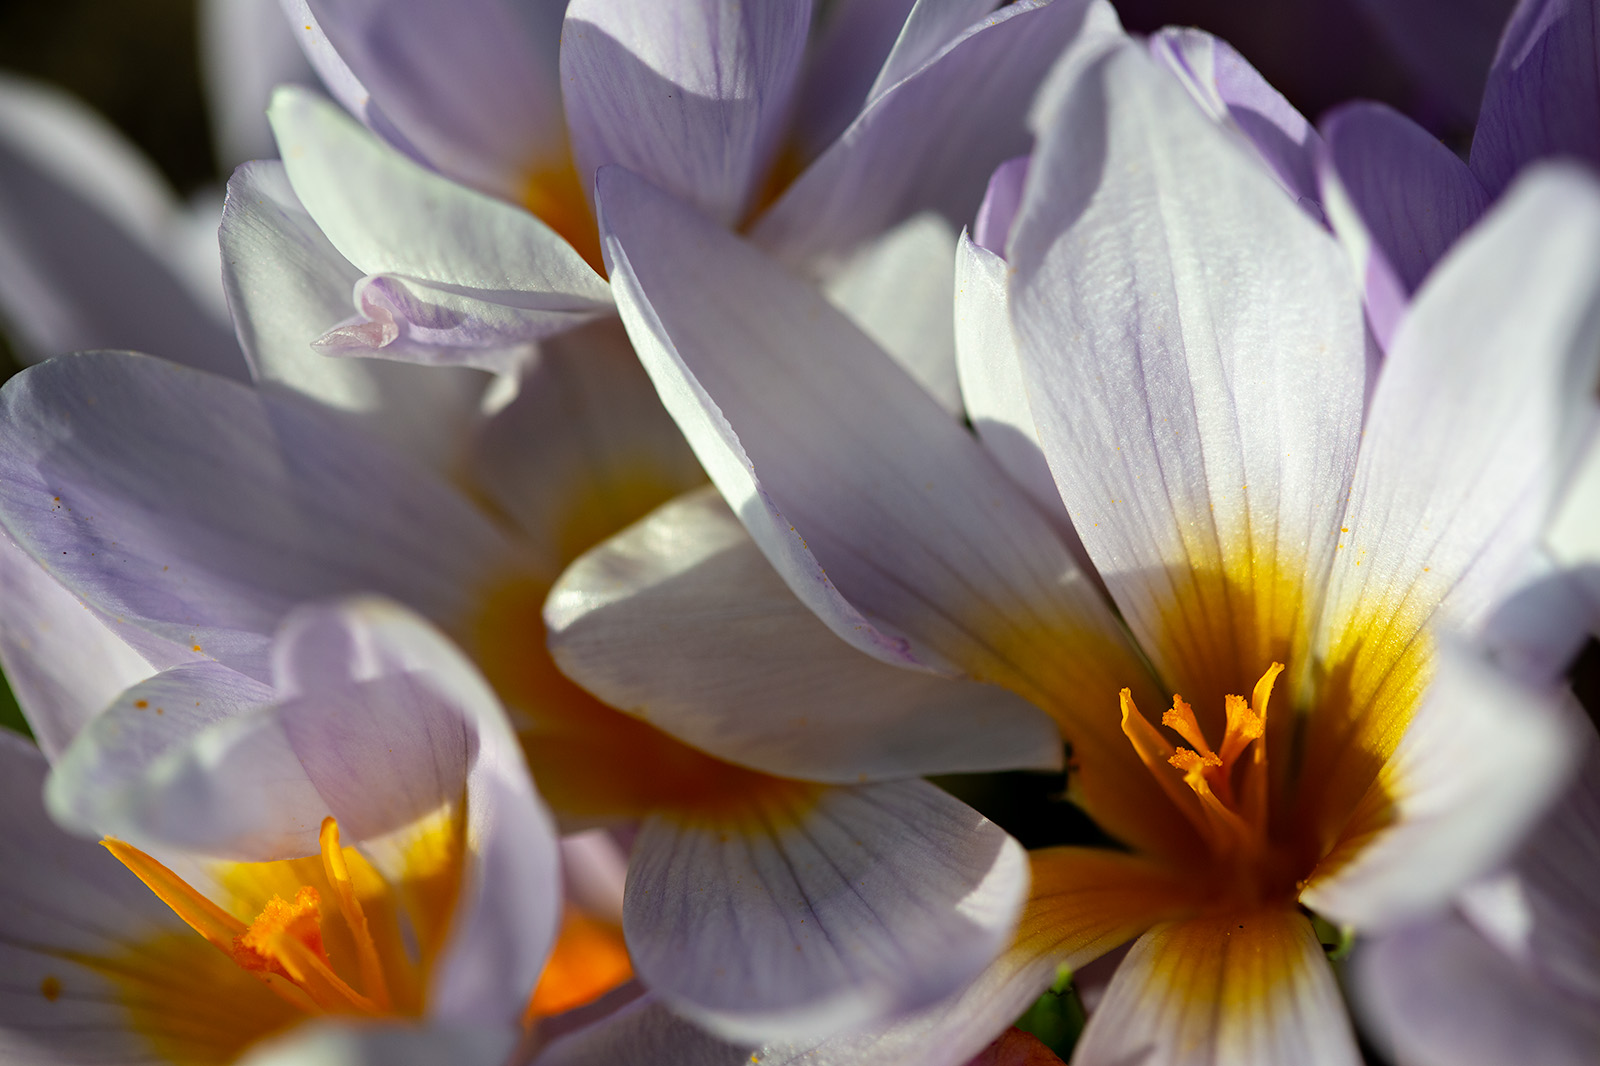 The flowers of <i>Crocus rujanensis</i>